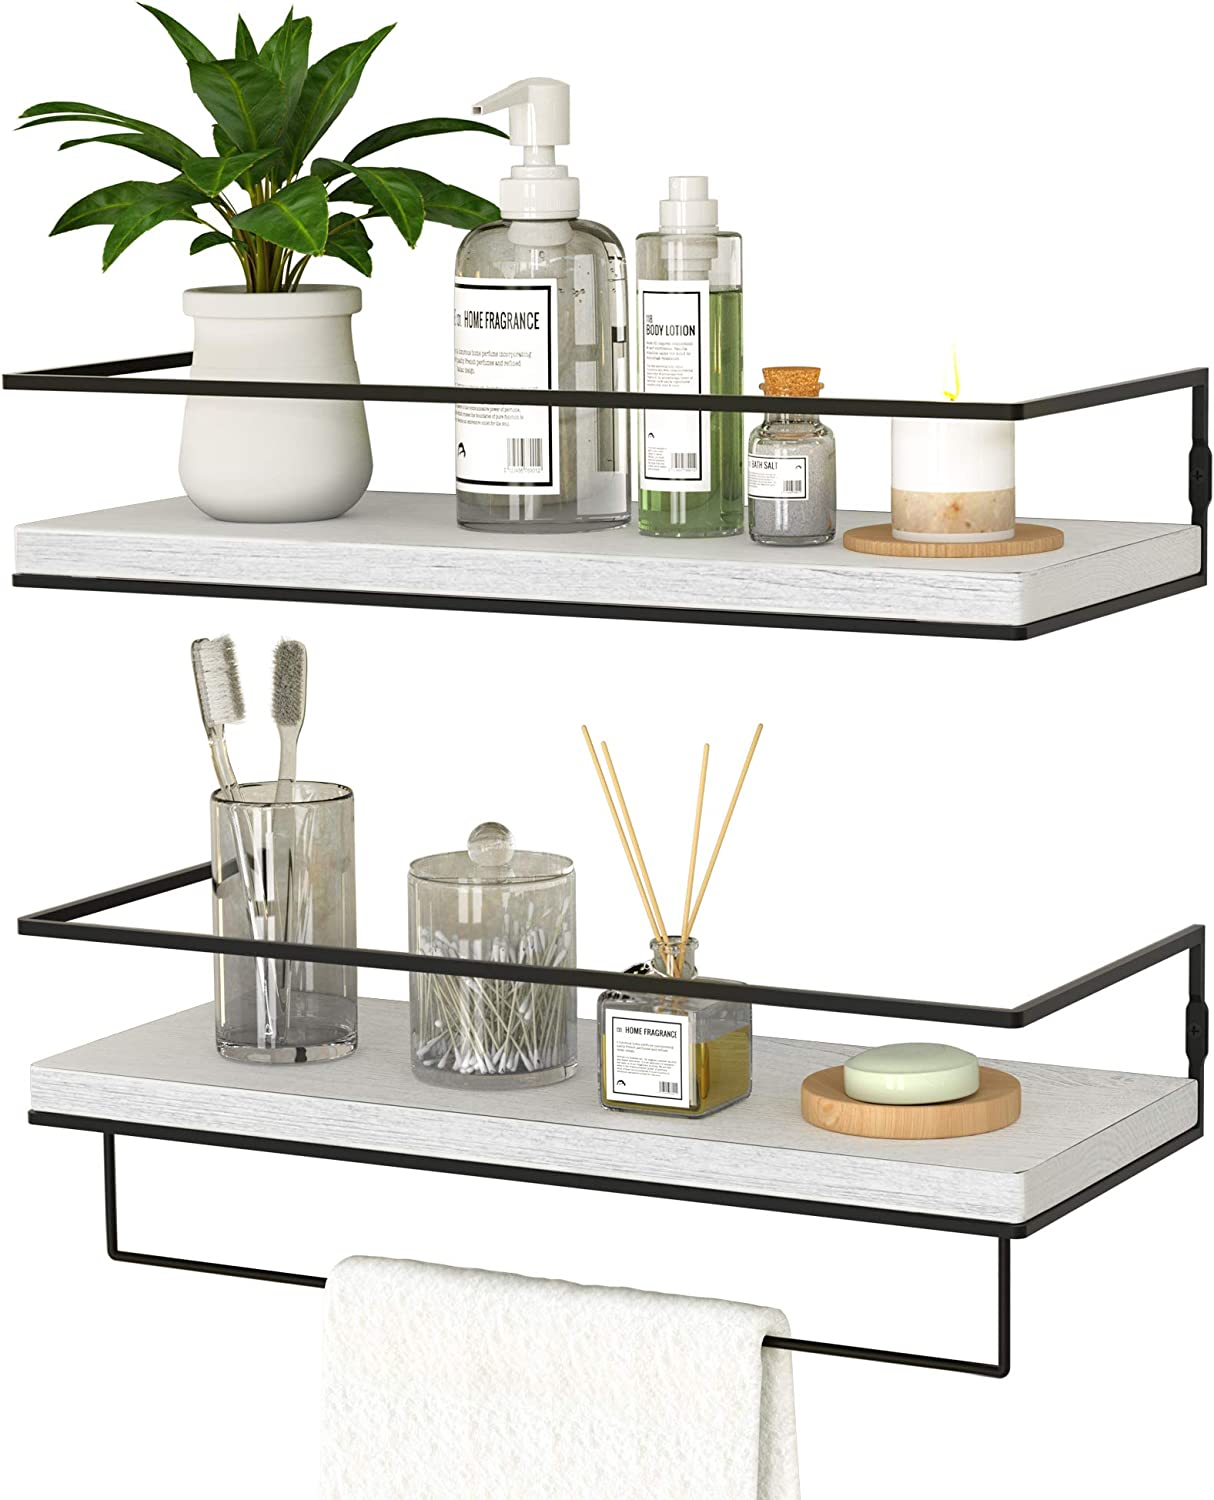 ZGO Floating Shelves for Wall Set of 2, Wall Mounted Storage Shelves with Black Metal Frame and Towel Rack for Bathroom, Bedroom, Living Room, Kitchen, Office (Grey-White)